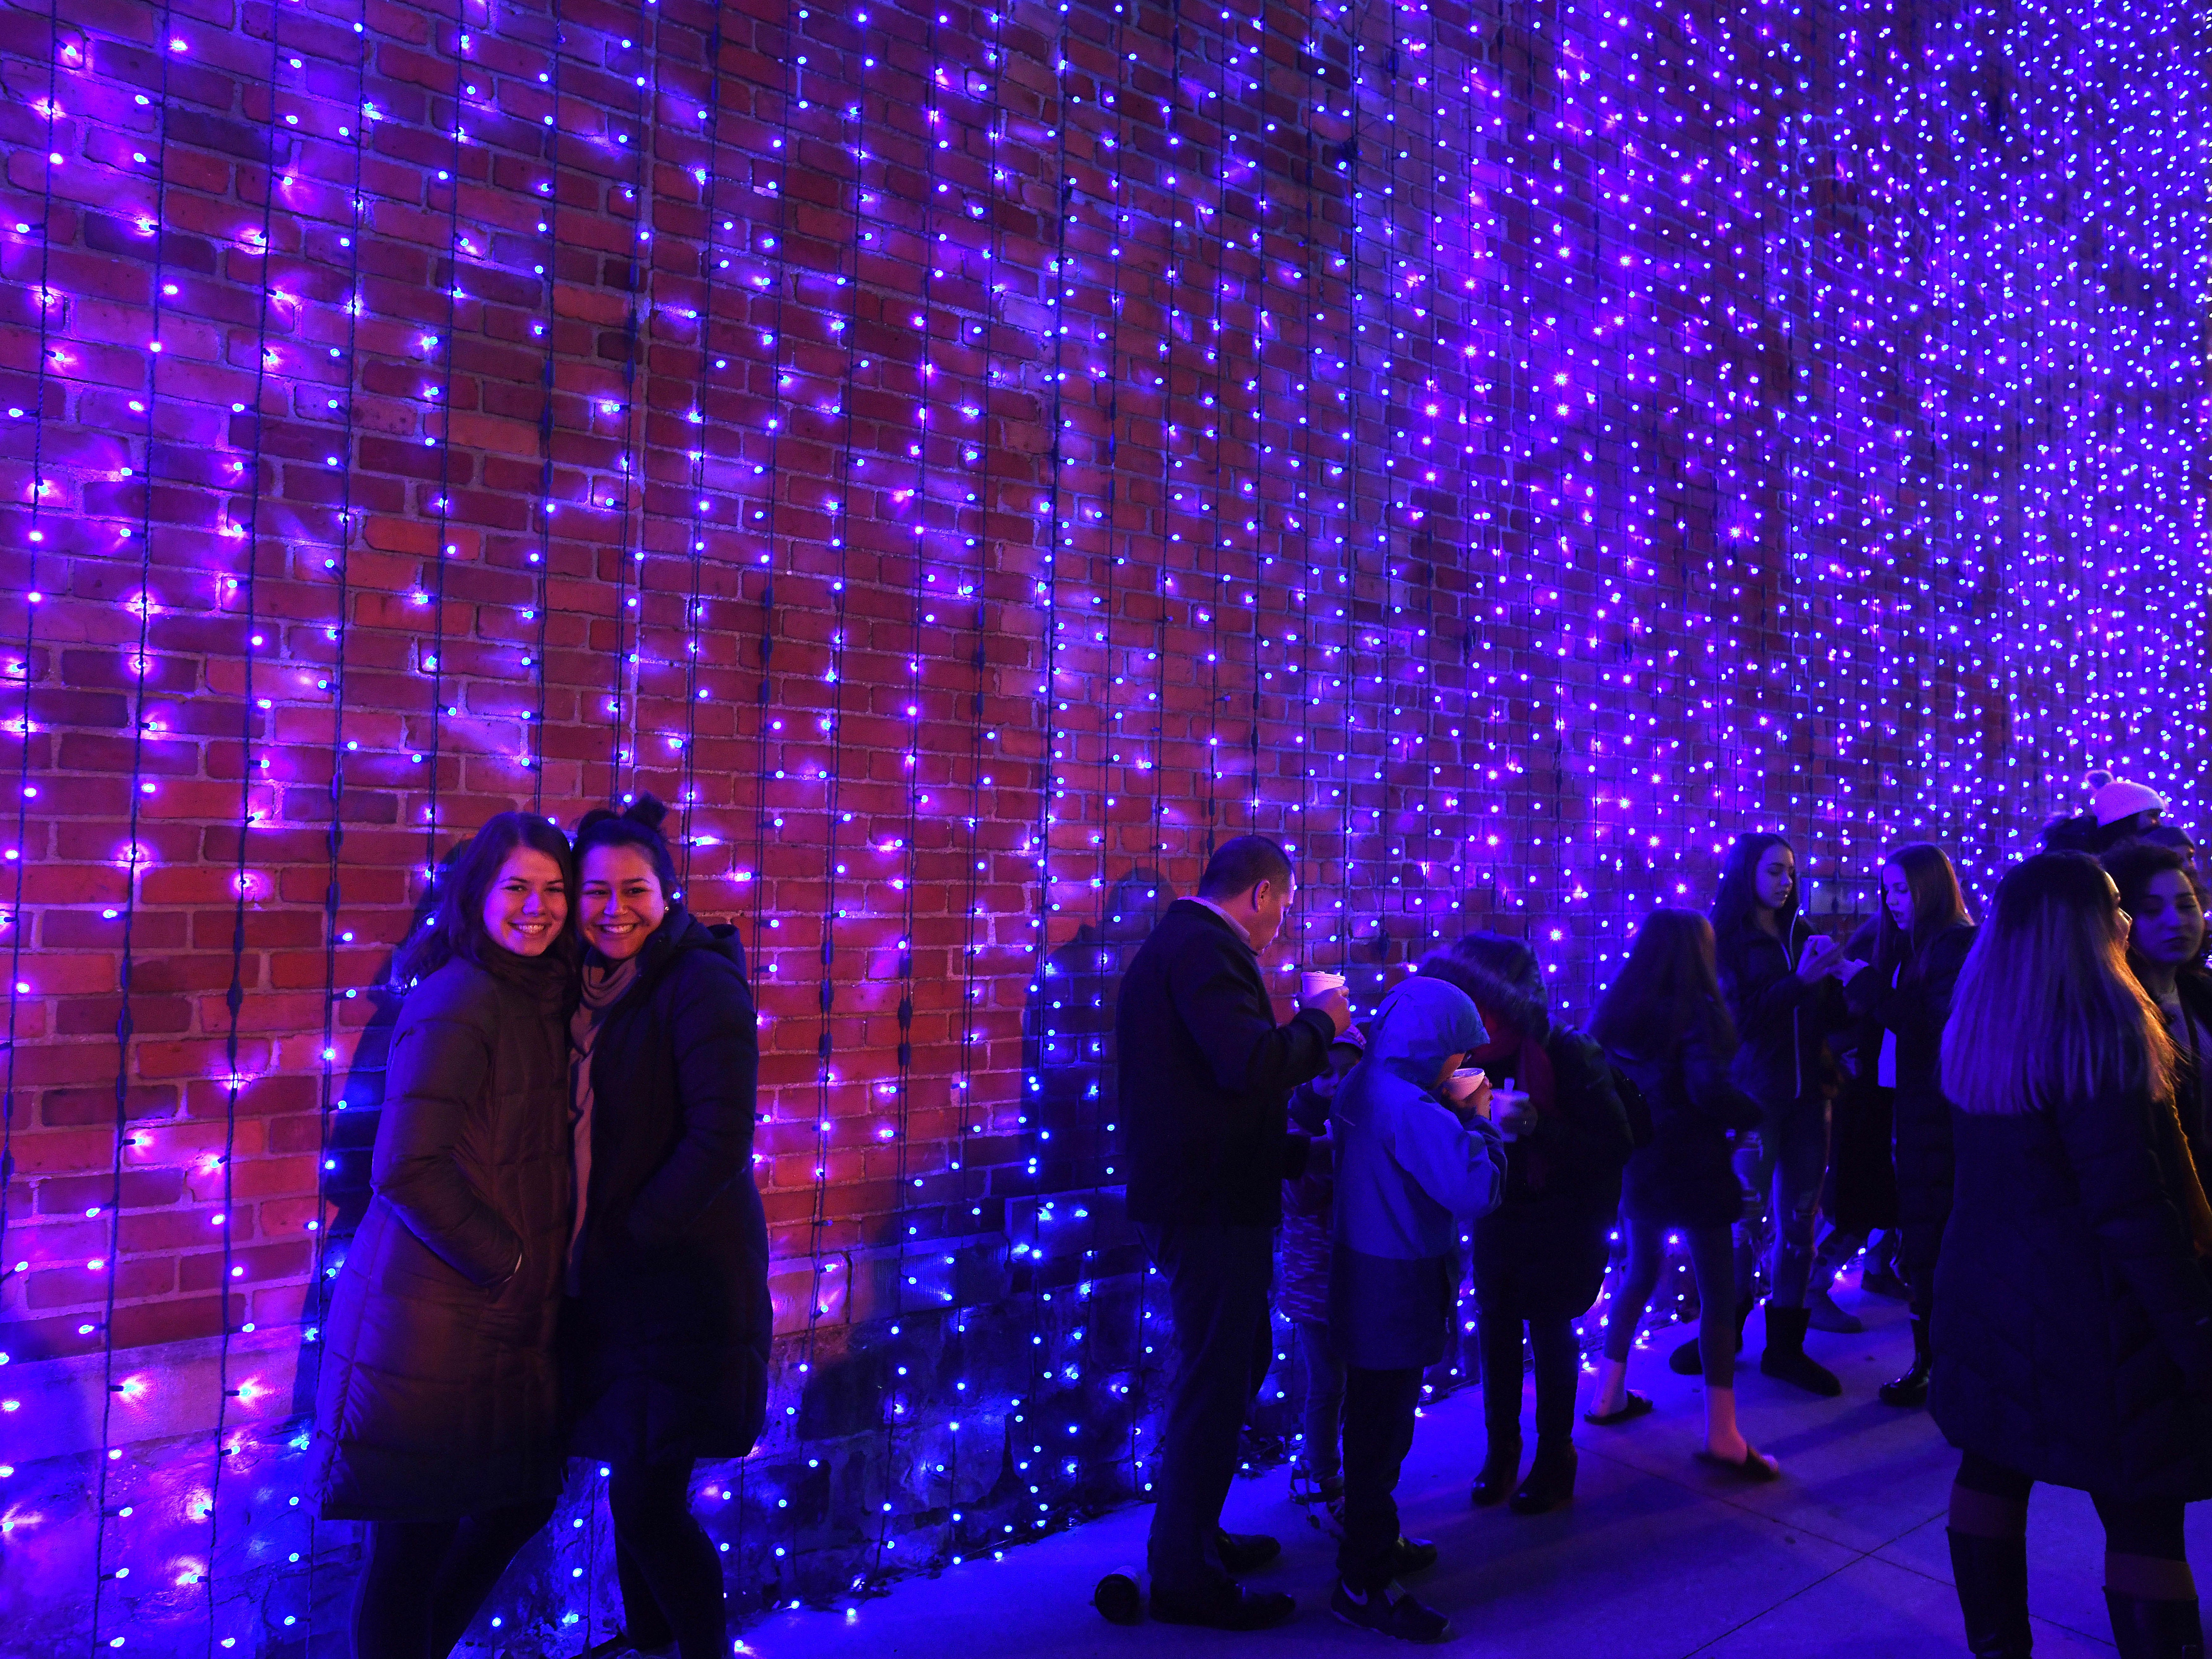 Peggy Laci and Anna Nickel pose for a picture against a wall of lights at The Big, Bright Light Show in downtown Rochester.